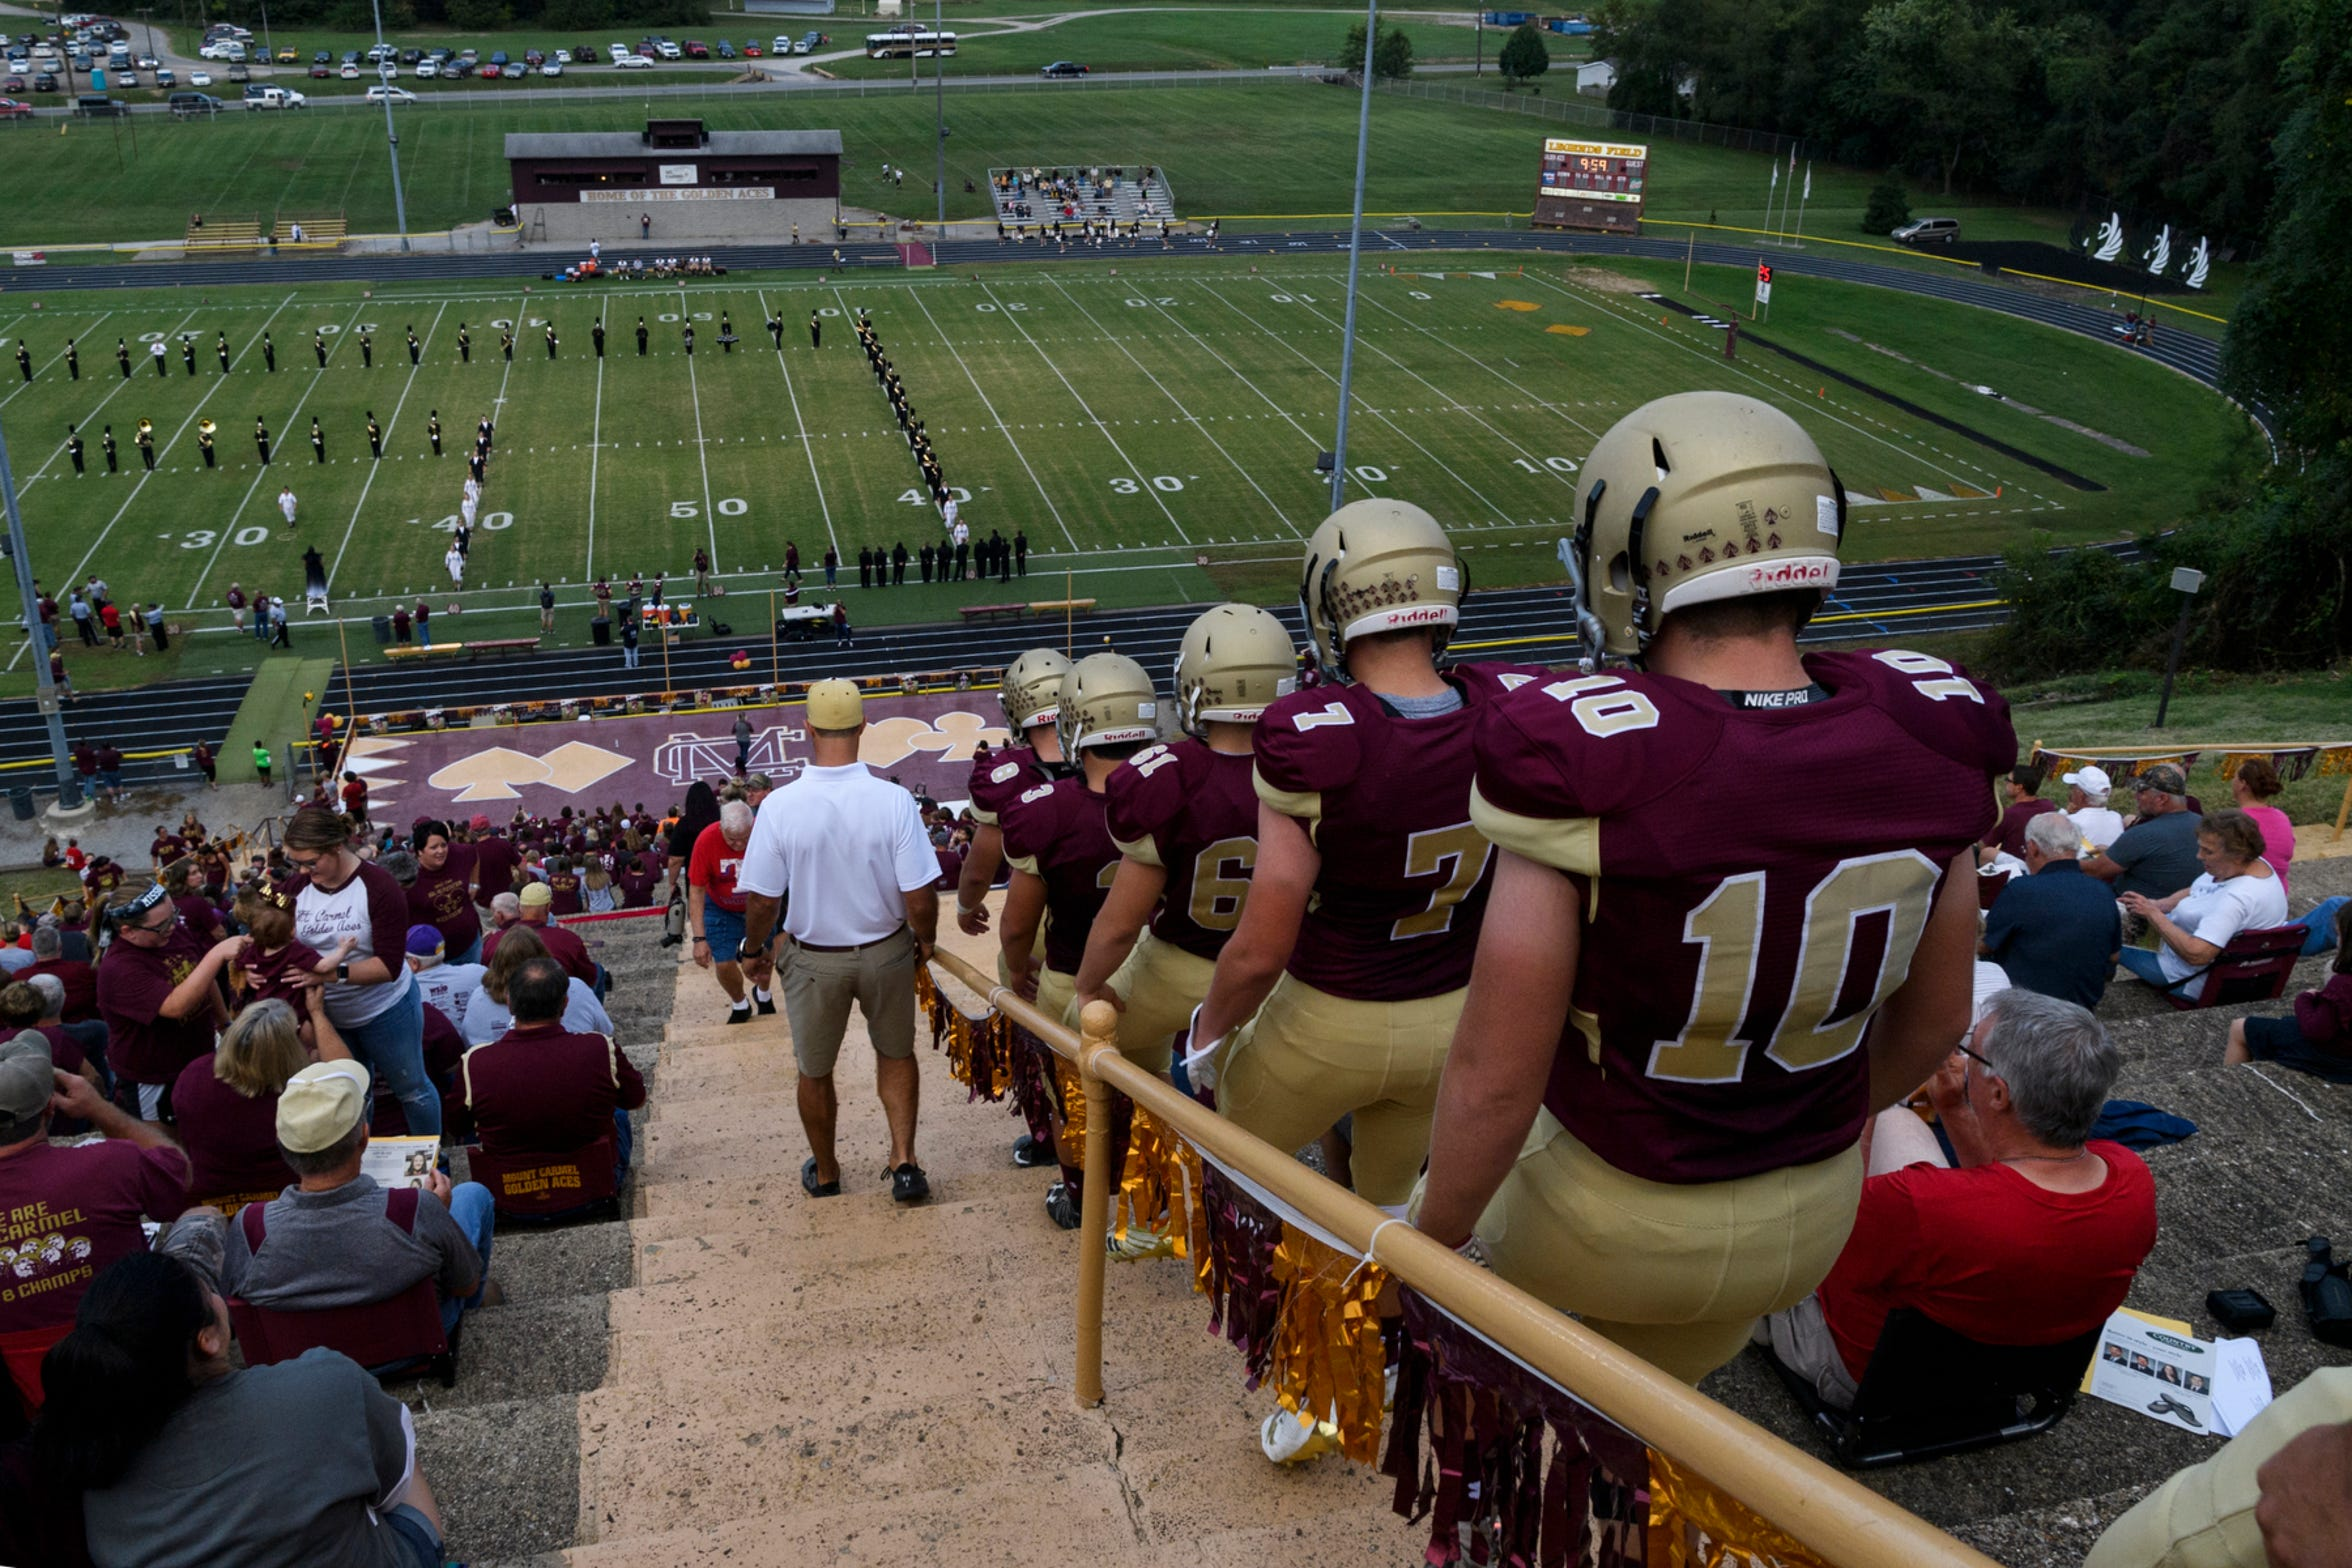 The Mount Carmel Golden Aces descend down the stairs of Riverview Stadium, known as the Snake Pit, before taking on the Washington Hatchets during Homecoming at Riverview Stadium, known as the Snake Pit, in Mount Carmel, Ill., Friday, Sept. 21, 2018. The Golden Aces defeated the Hatchets 61-20.